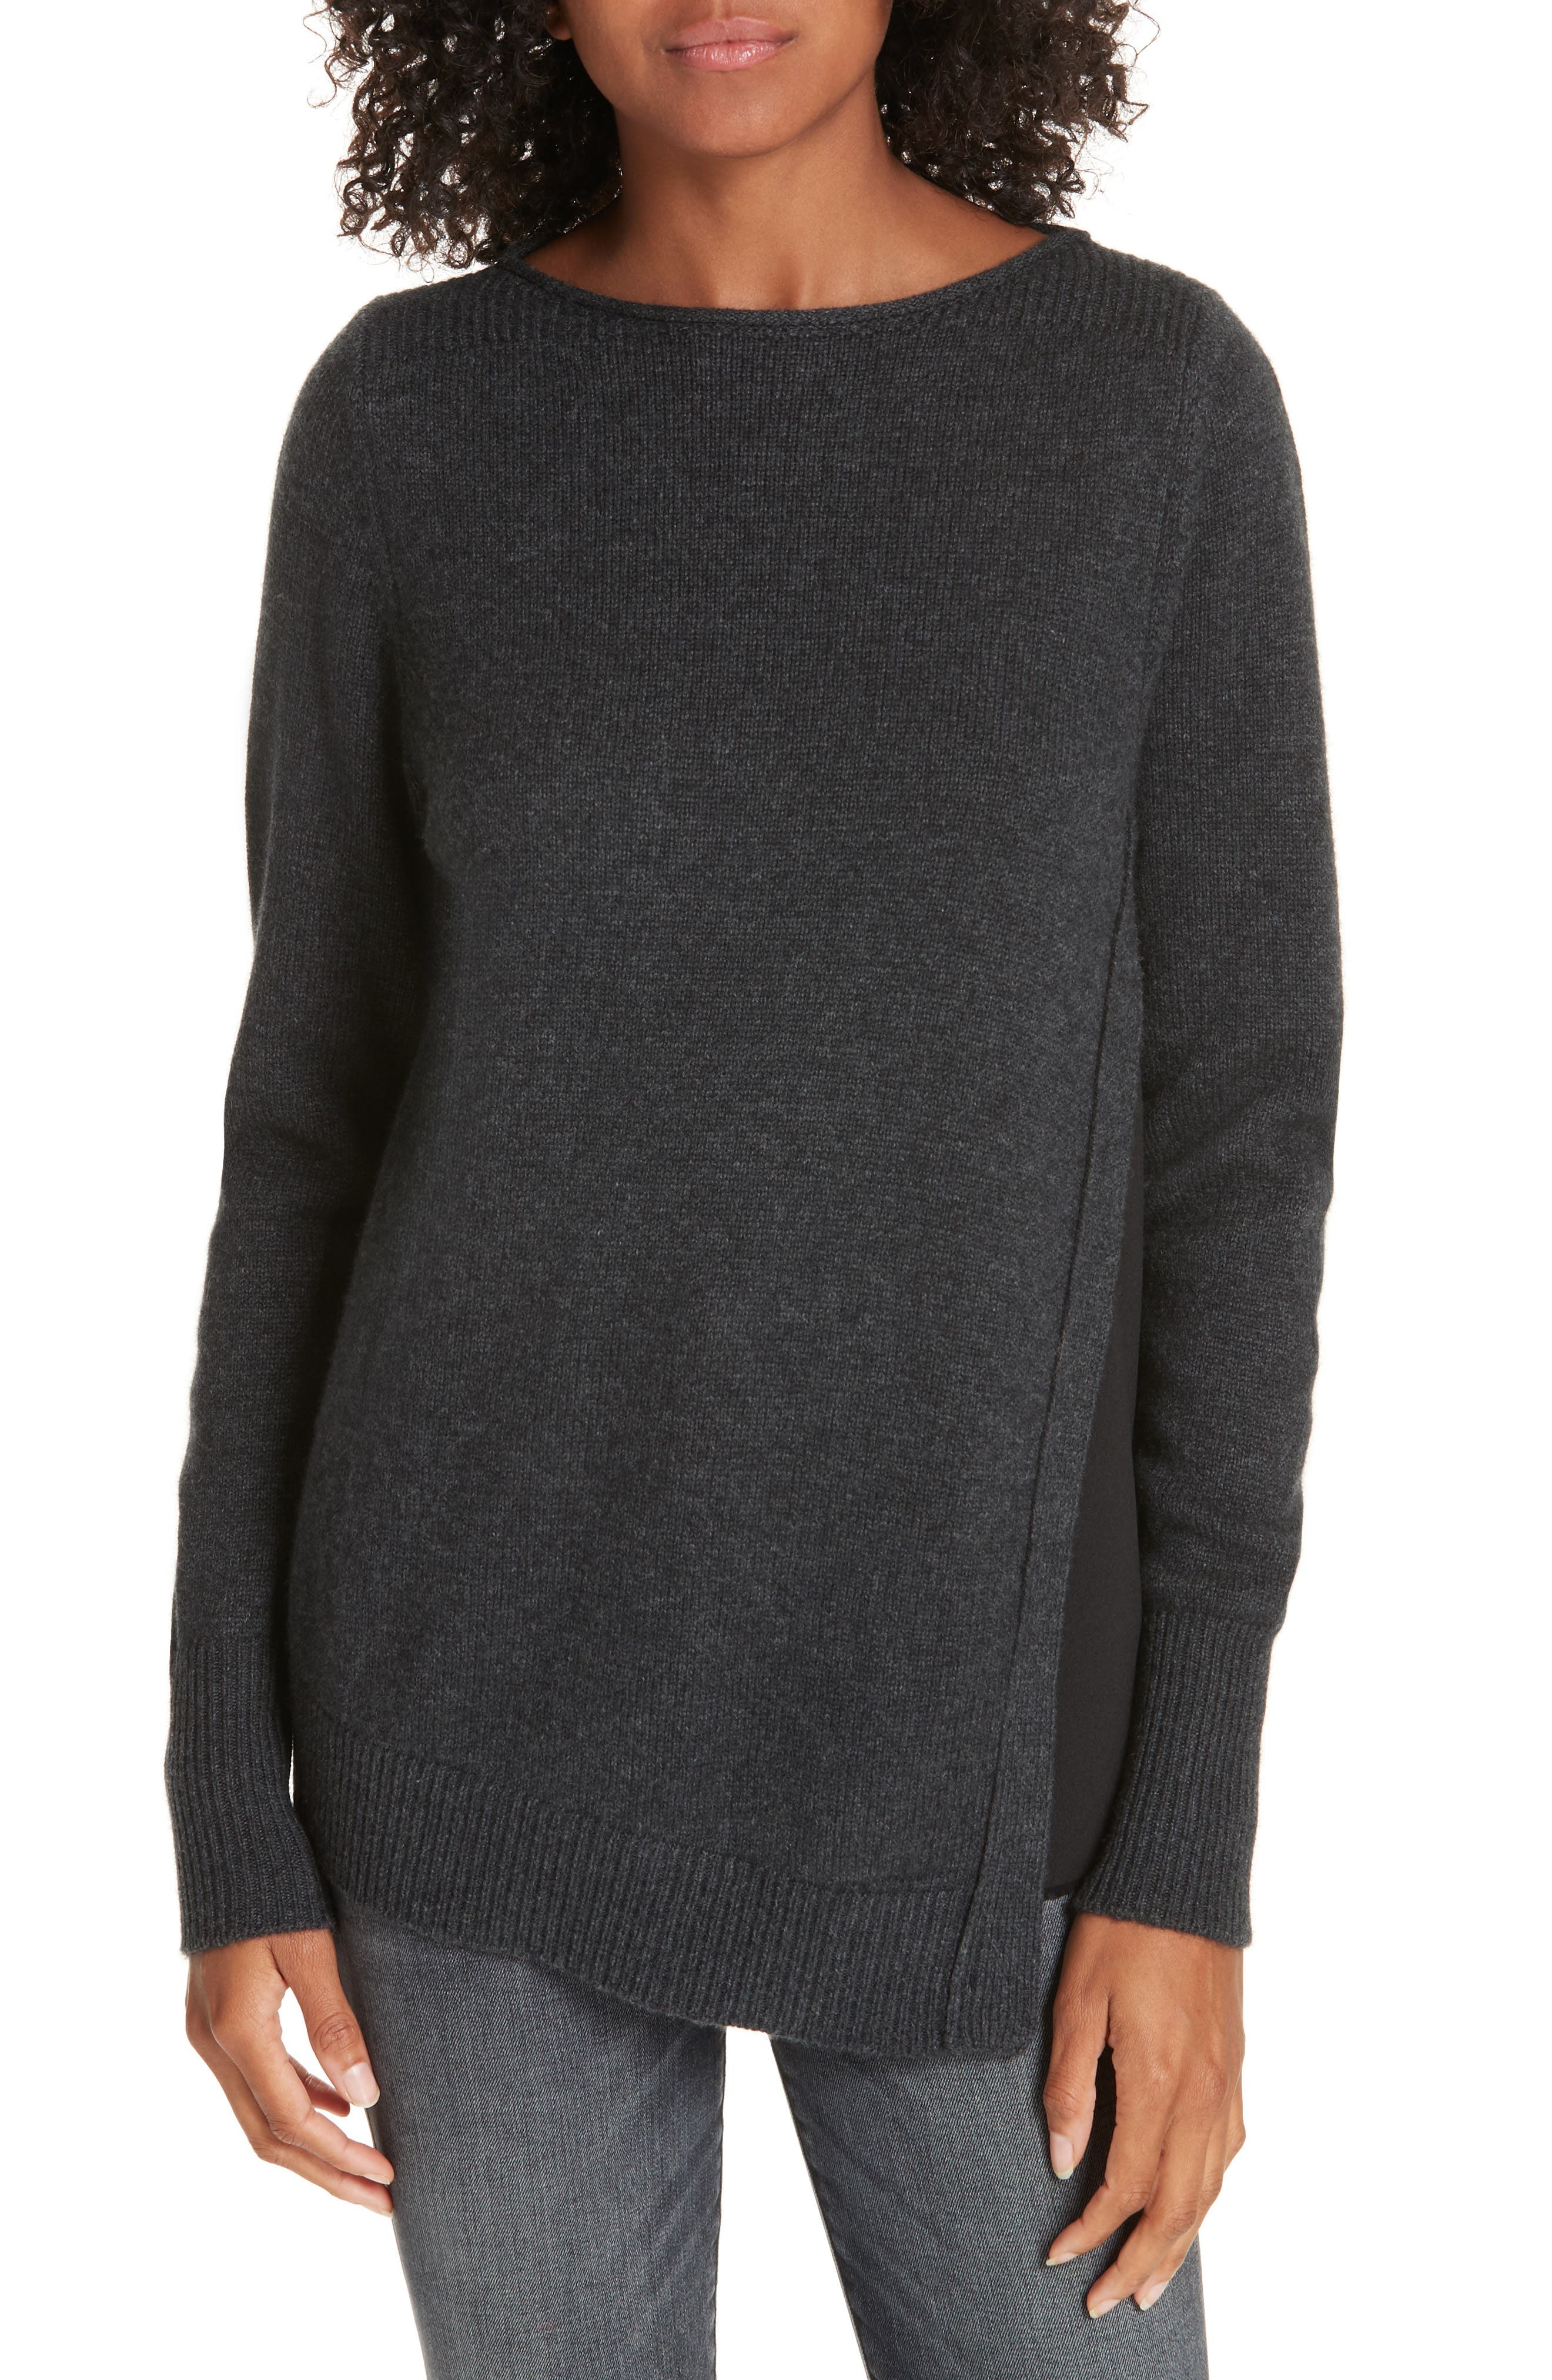 BROCHU WALKER Wool & Cashmere Layered Sweater in Greystone With Black